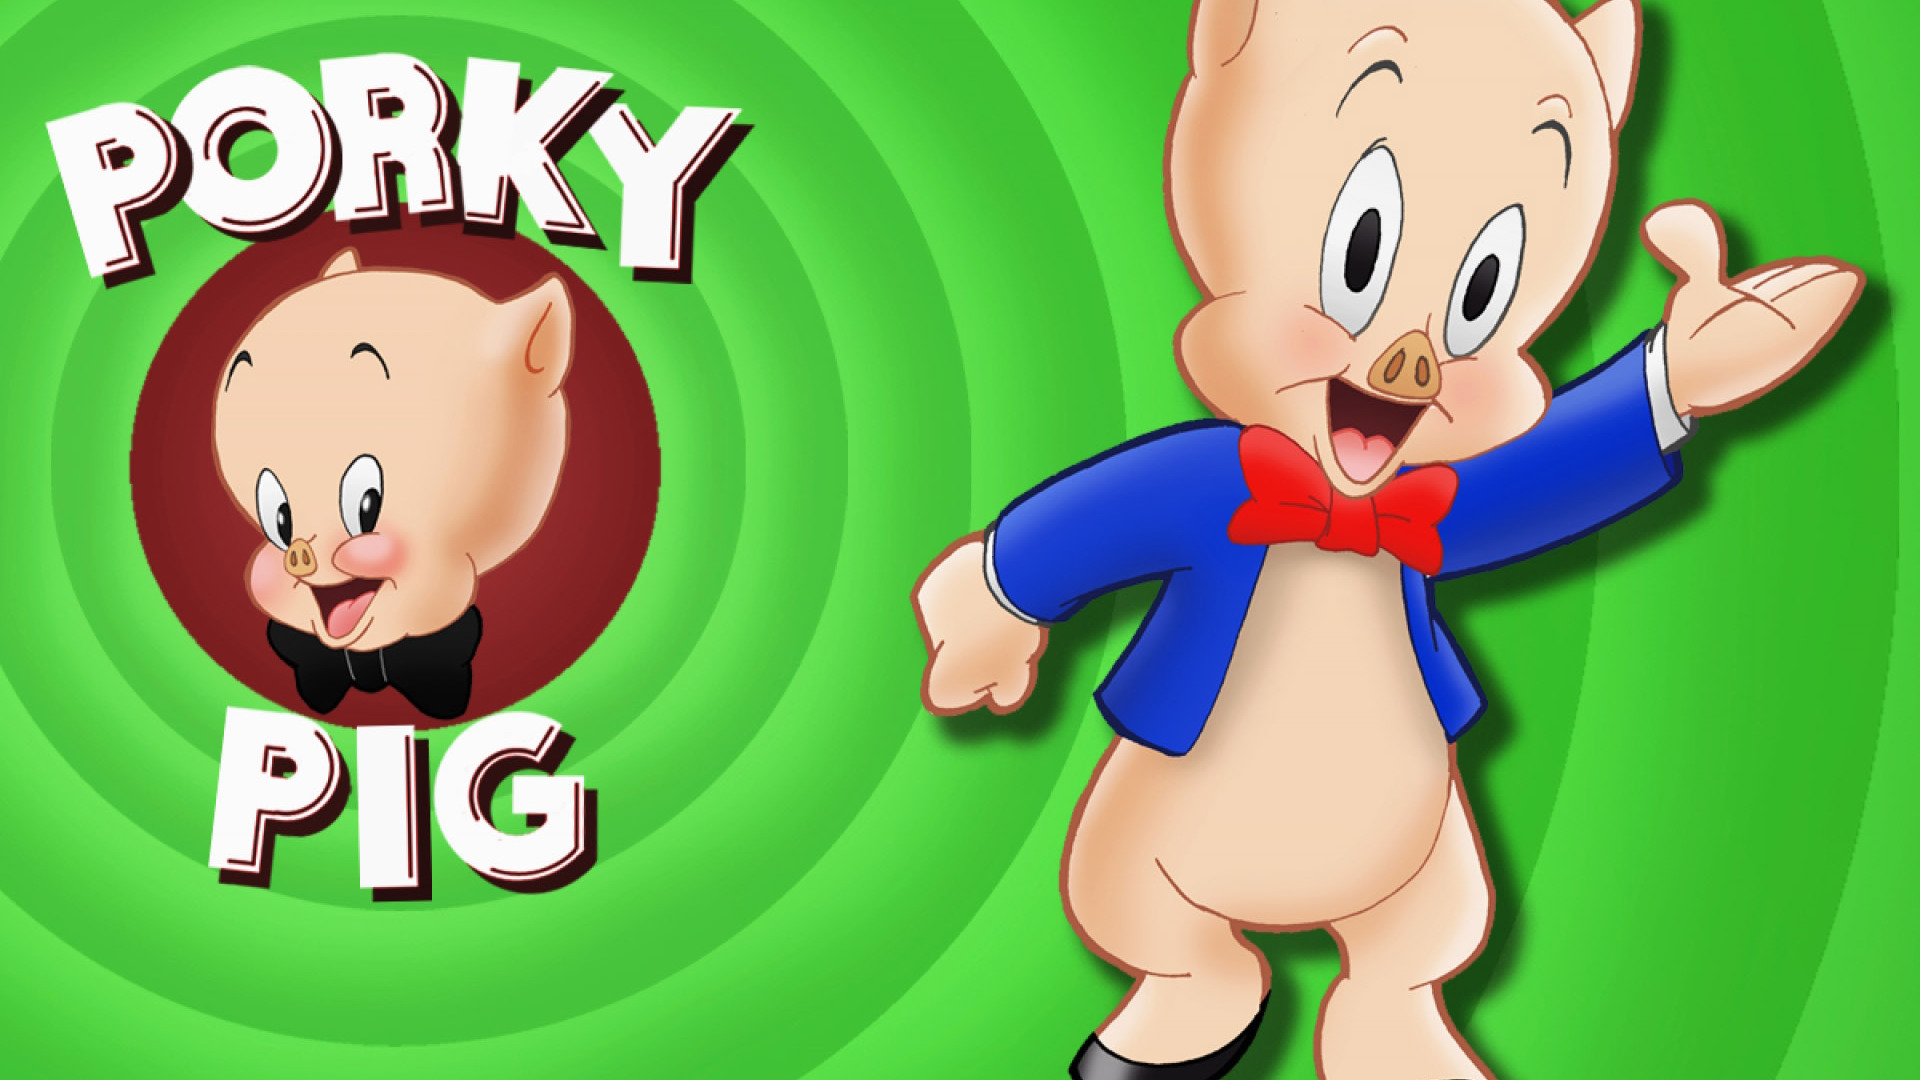 Porky Pig Looney Tunes Wallpaper High Definition High